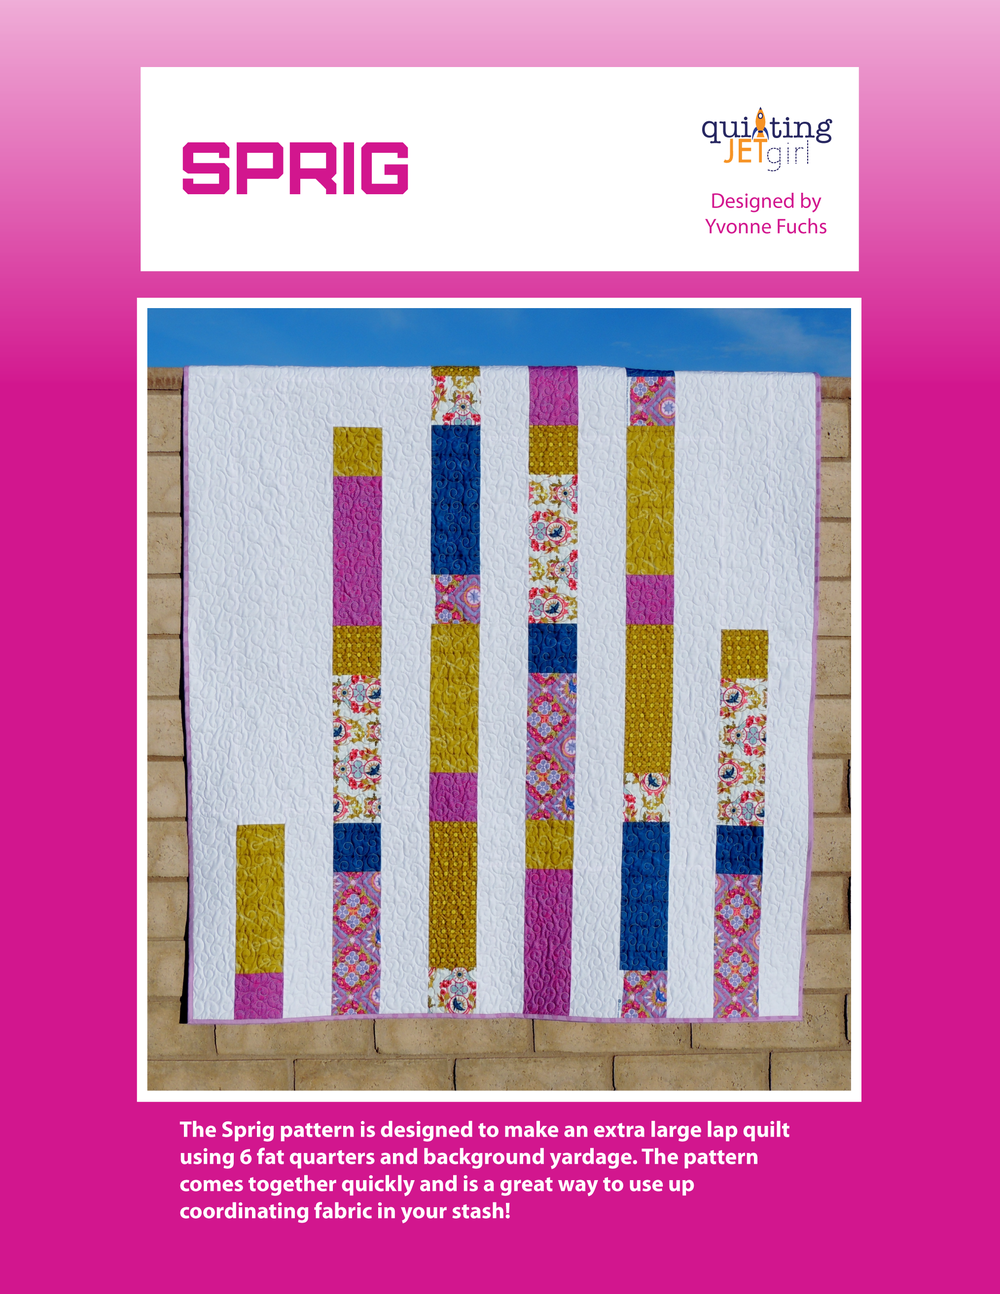 Quilting Jetgirl - Sprig by Yvonne 3.png